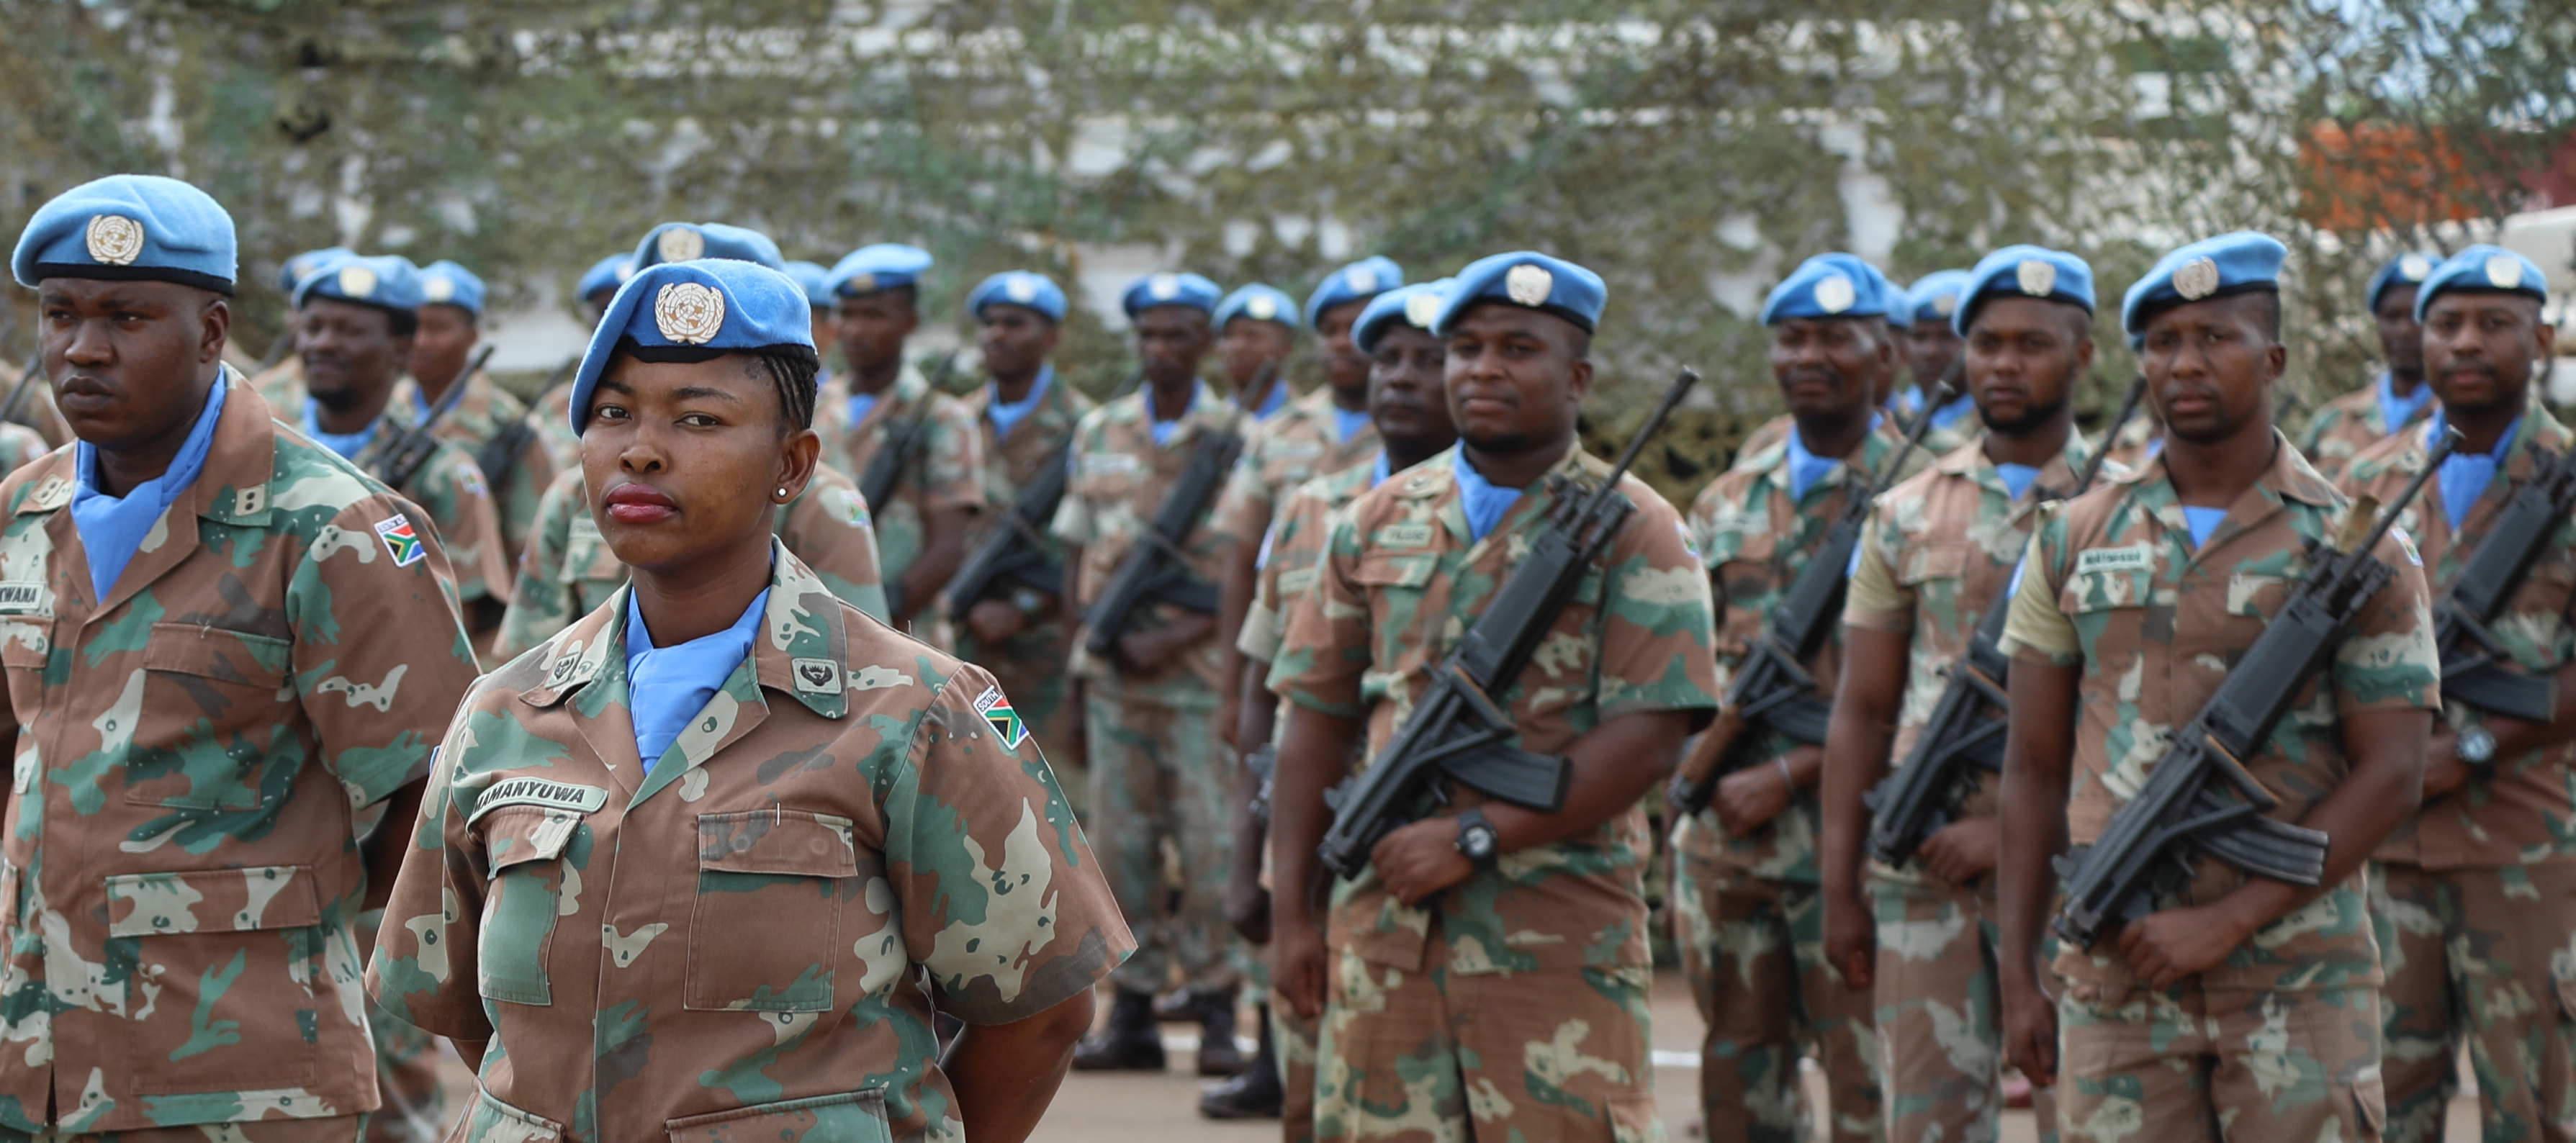 Masculinities in Peacekeeping